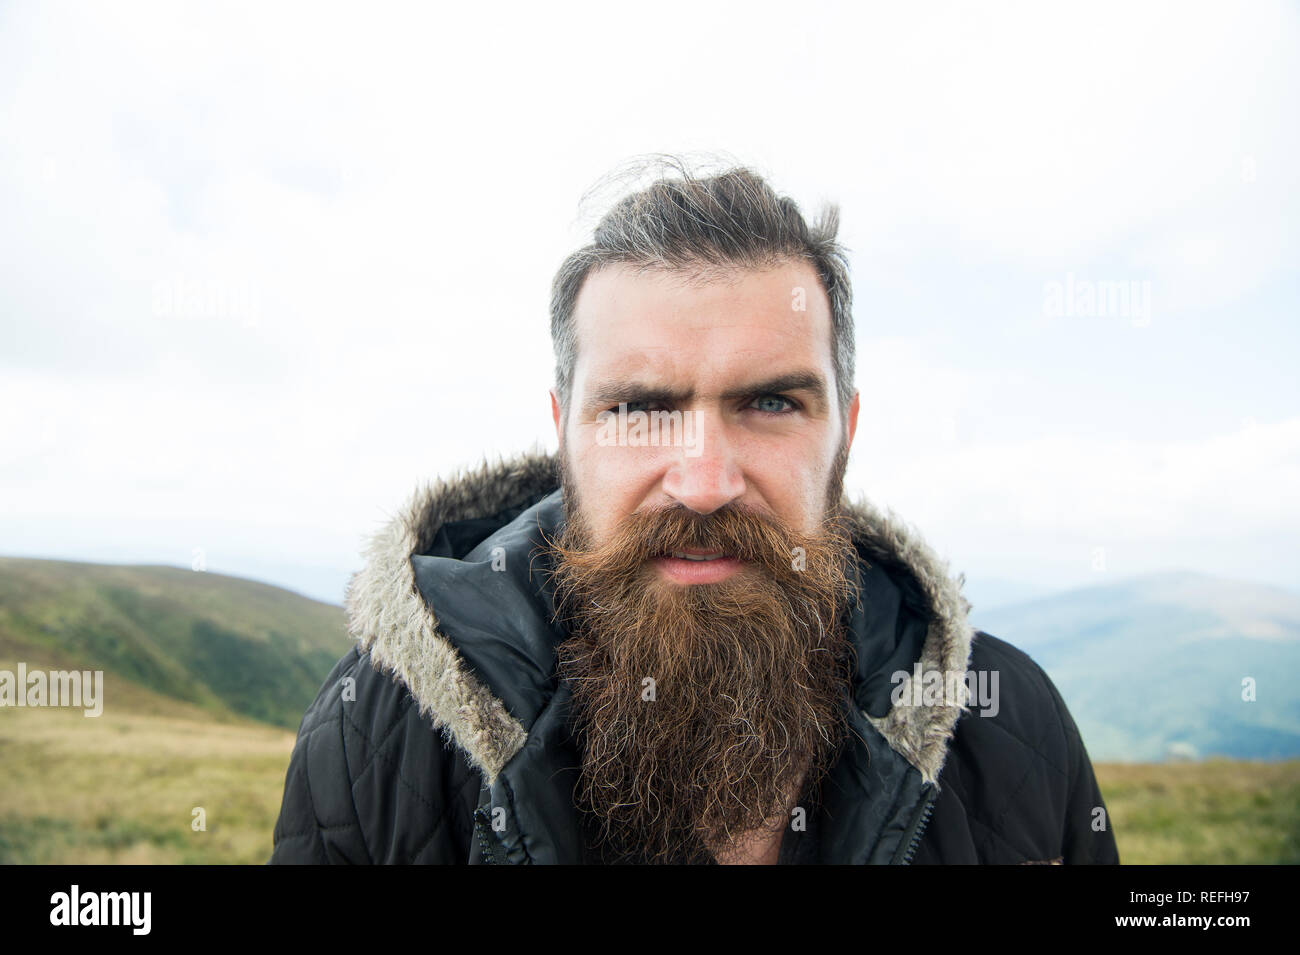 Man with long beard and mustache wears jacket. Hipster on strict face with beard looks brutally while hiking. Hermit concept. Man with brutal bearded appearance, brutal unshaven man looks untidy. - Stock Image